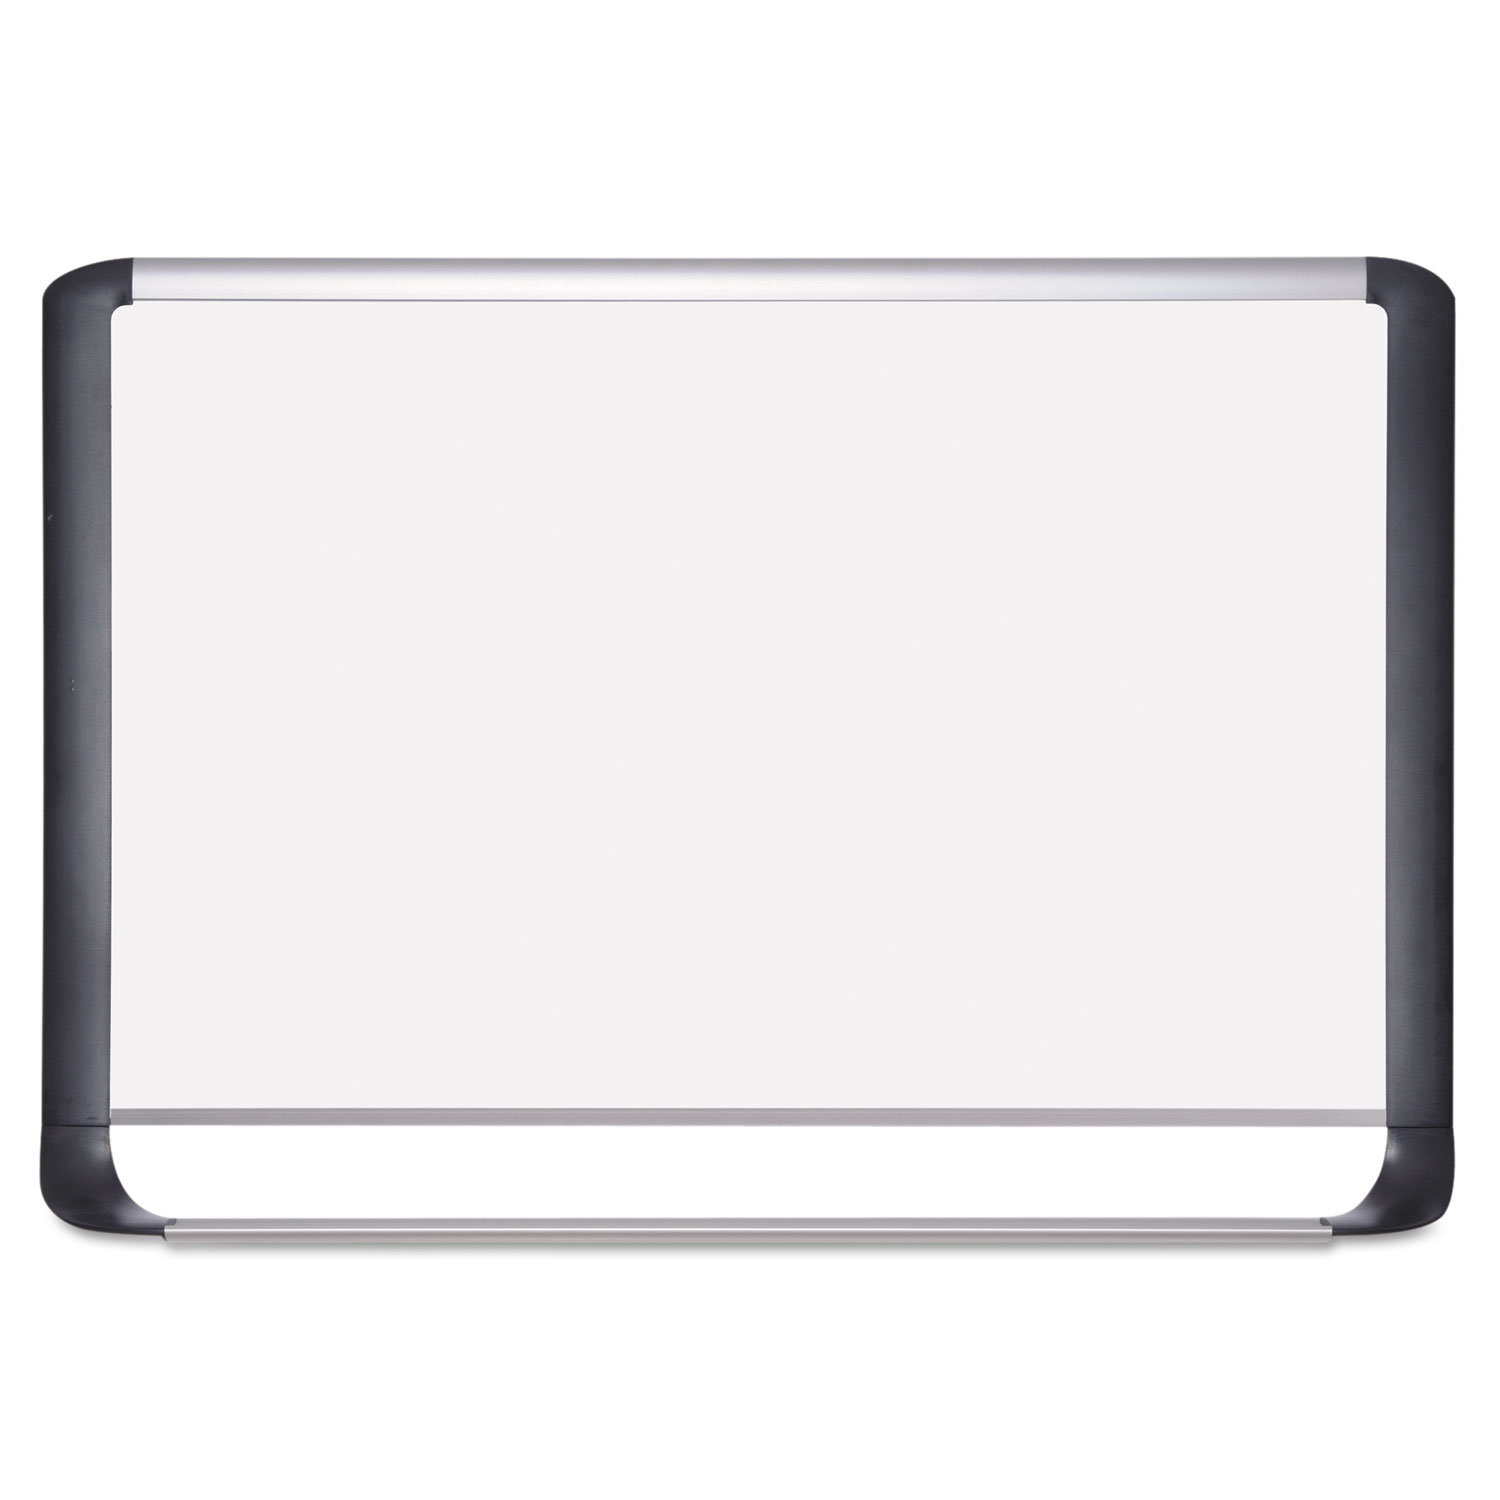 Lacquered steel magnetic dry erase board, 48 x 96, Silver/Black